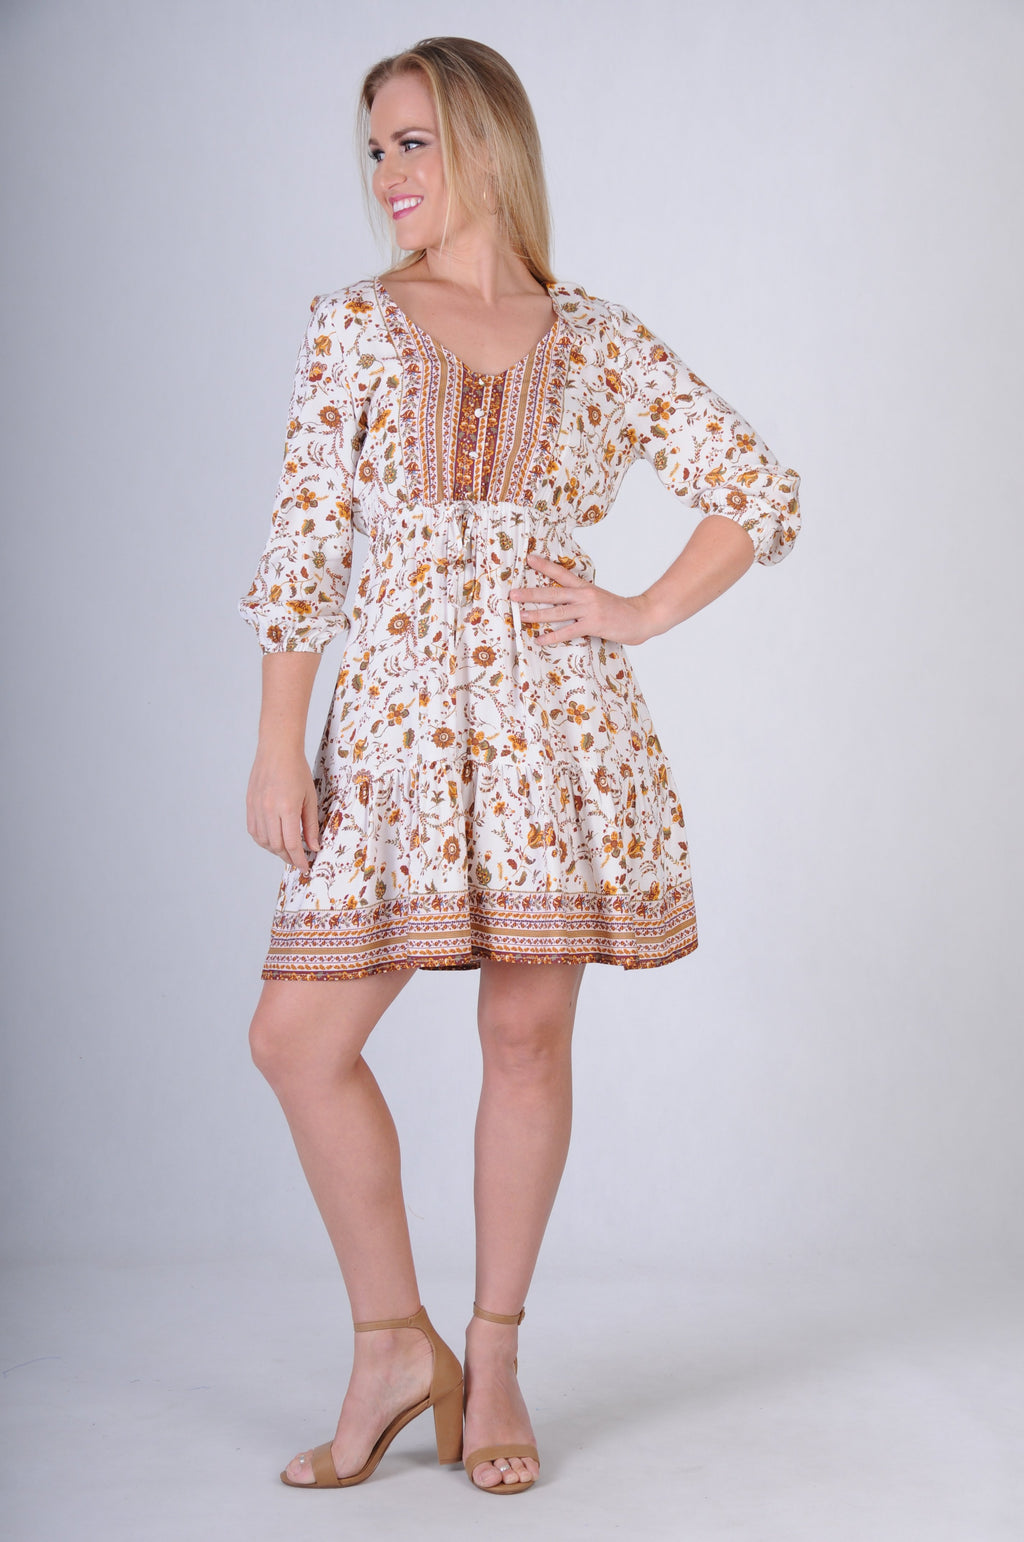 VJHD231 - WALNUT DRESS - ARIZONA WHITE